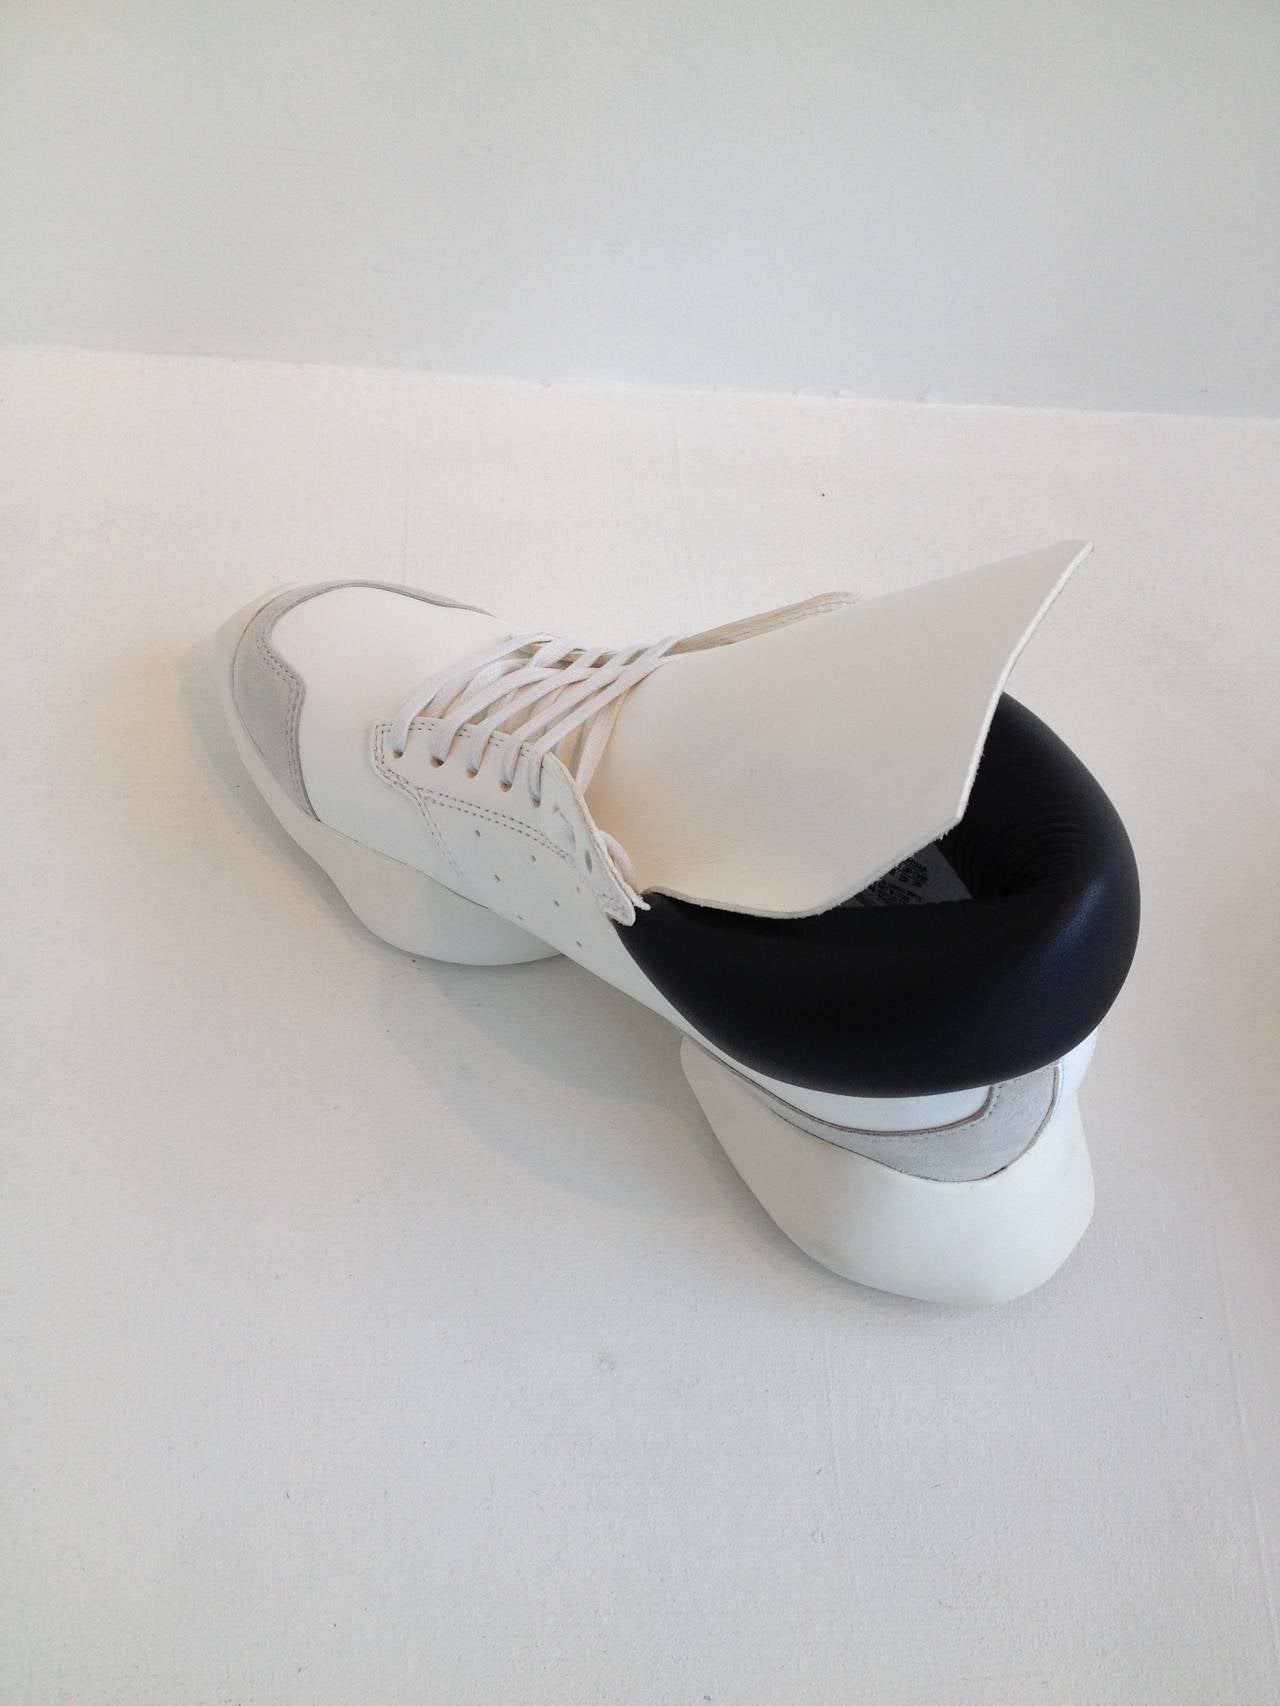 Rick Owens for Adidas White Puffy Sneakers 4